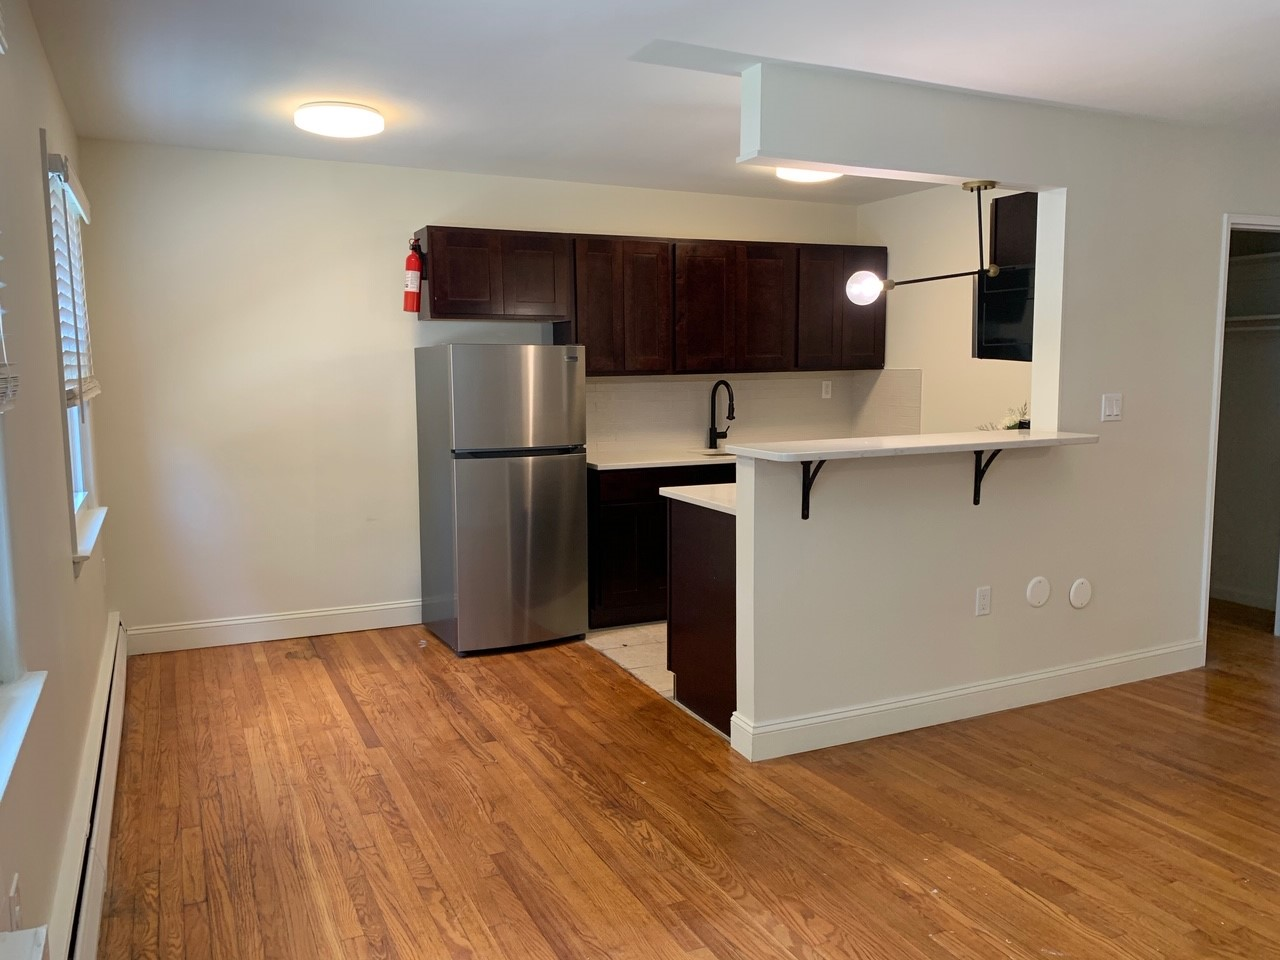 Spacious Kitchen at Livingston Gardens Apartments in North Brunswick Township, New Jersey